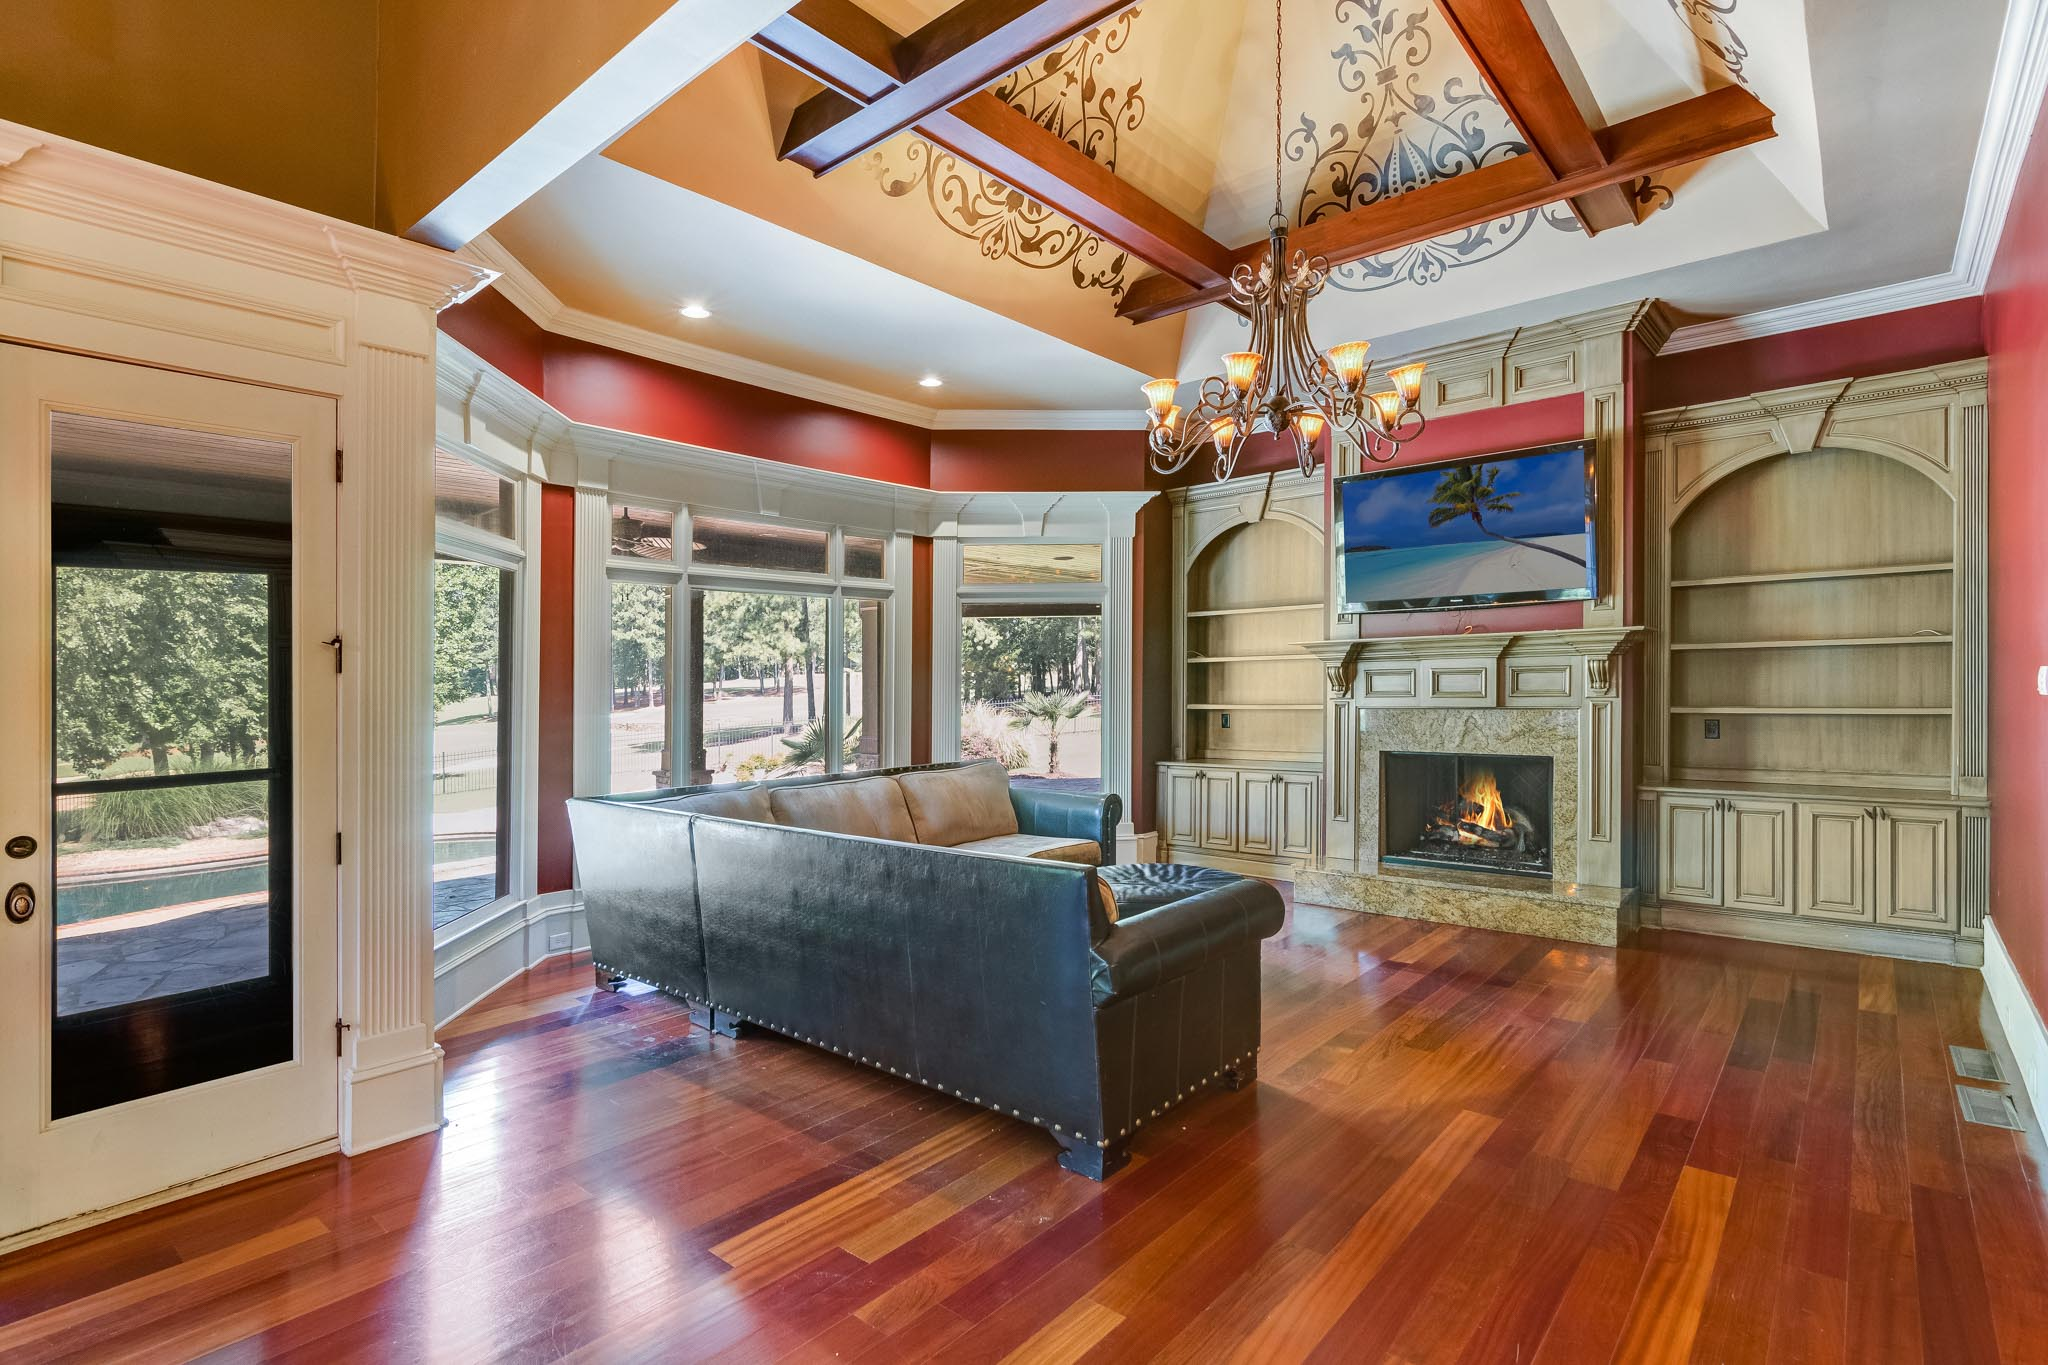 real_estate_photographer_living_room_photography-1.jpg